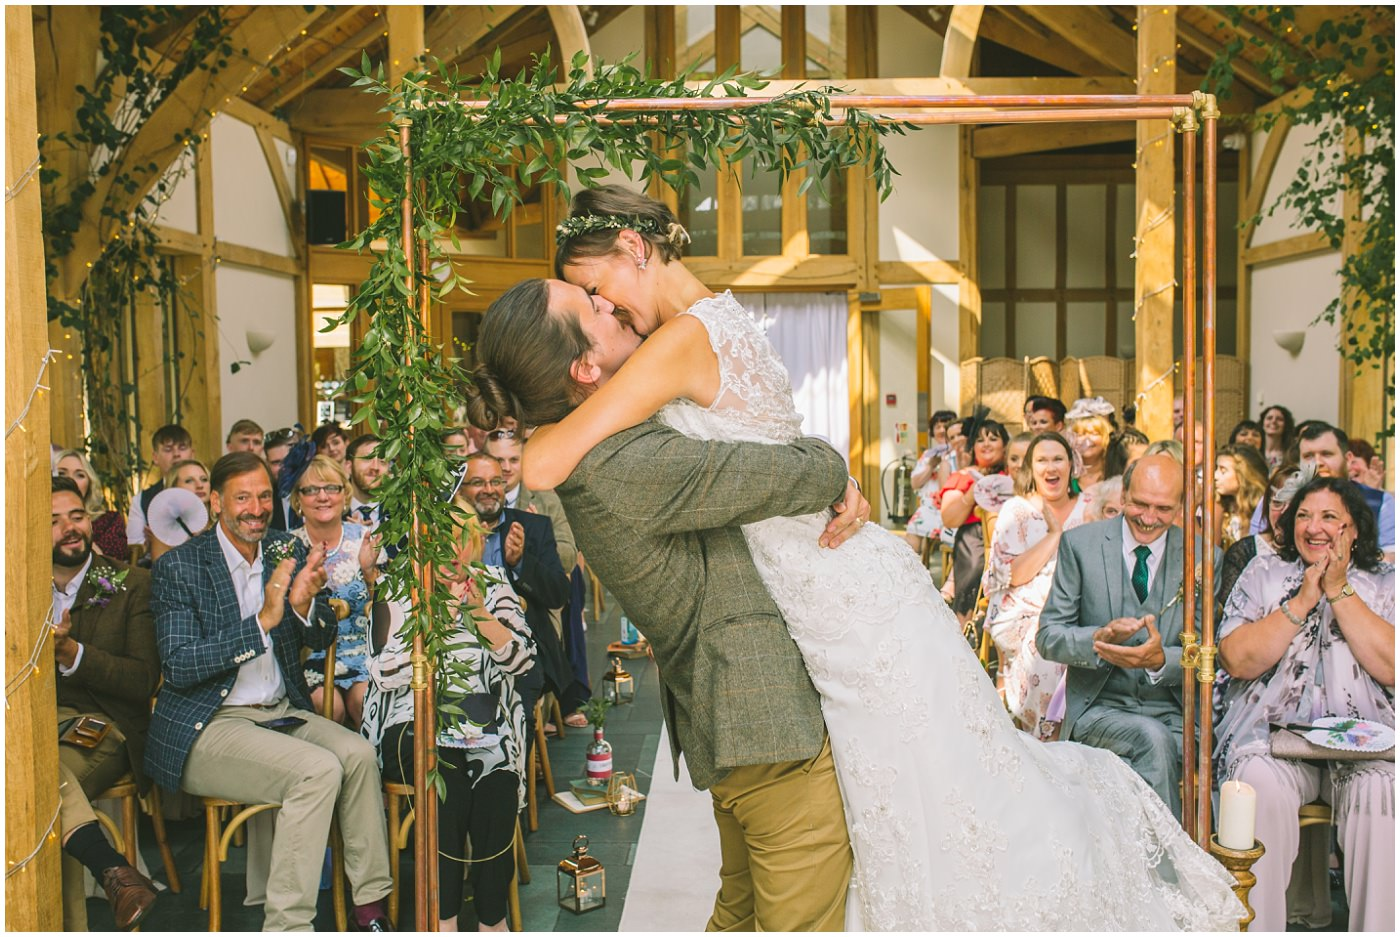 Groom lifts bride as they kiss and a pronounced man and wife